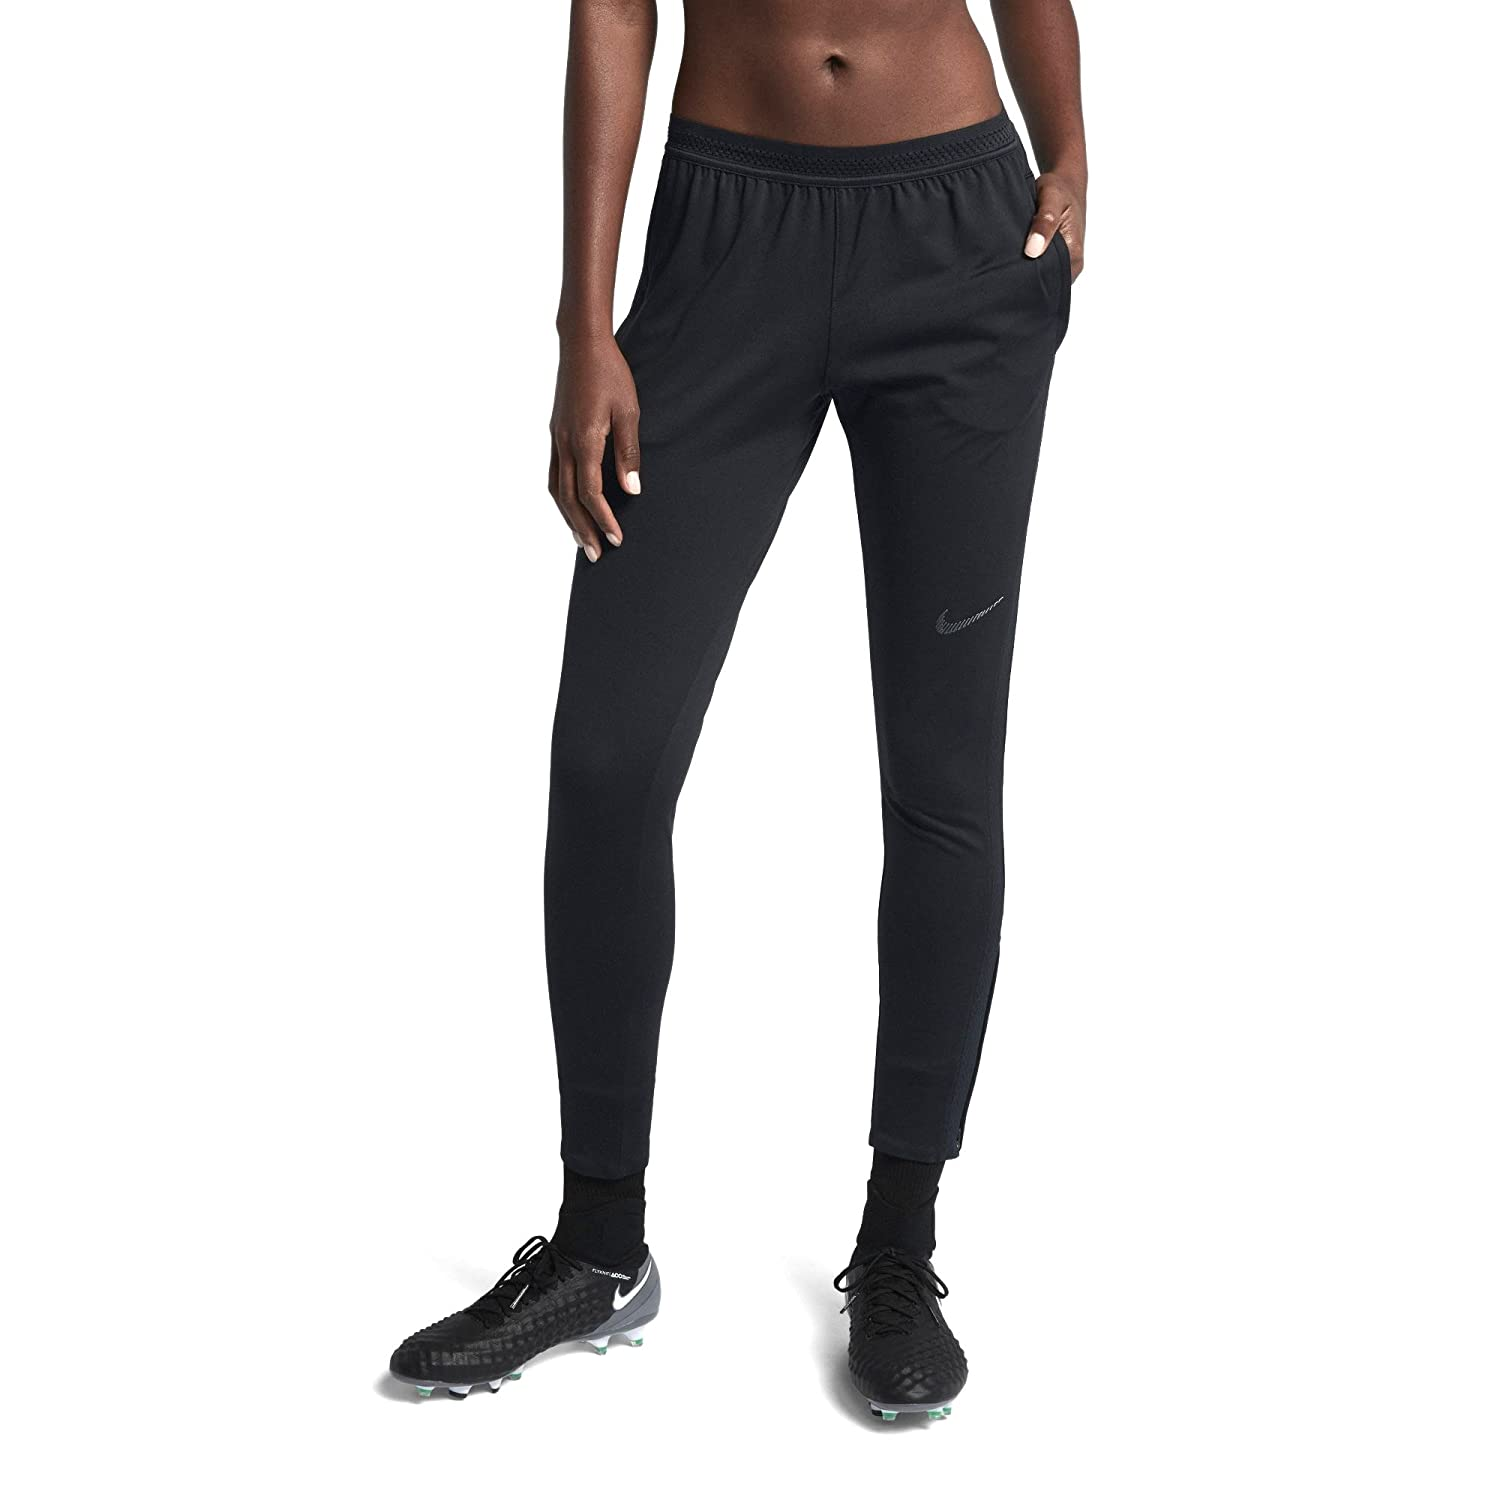 Nike Women s Strike Dry Training Soccer Pants at Amazon Women s Clothing  store  1623d63d07